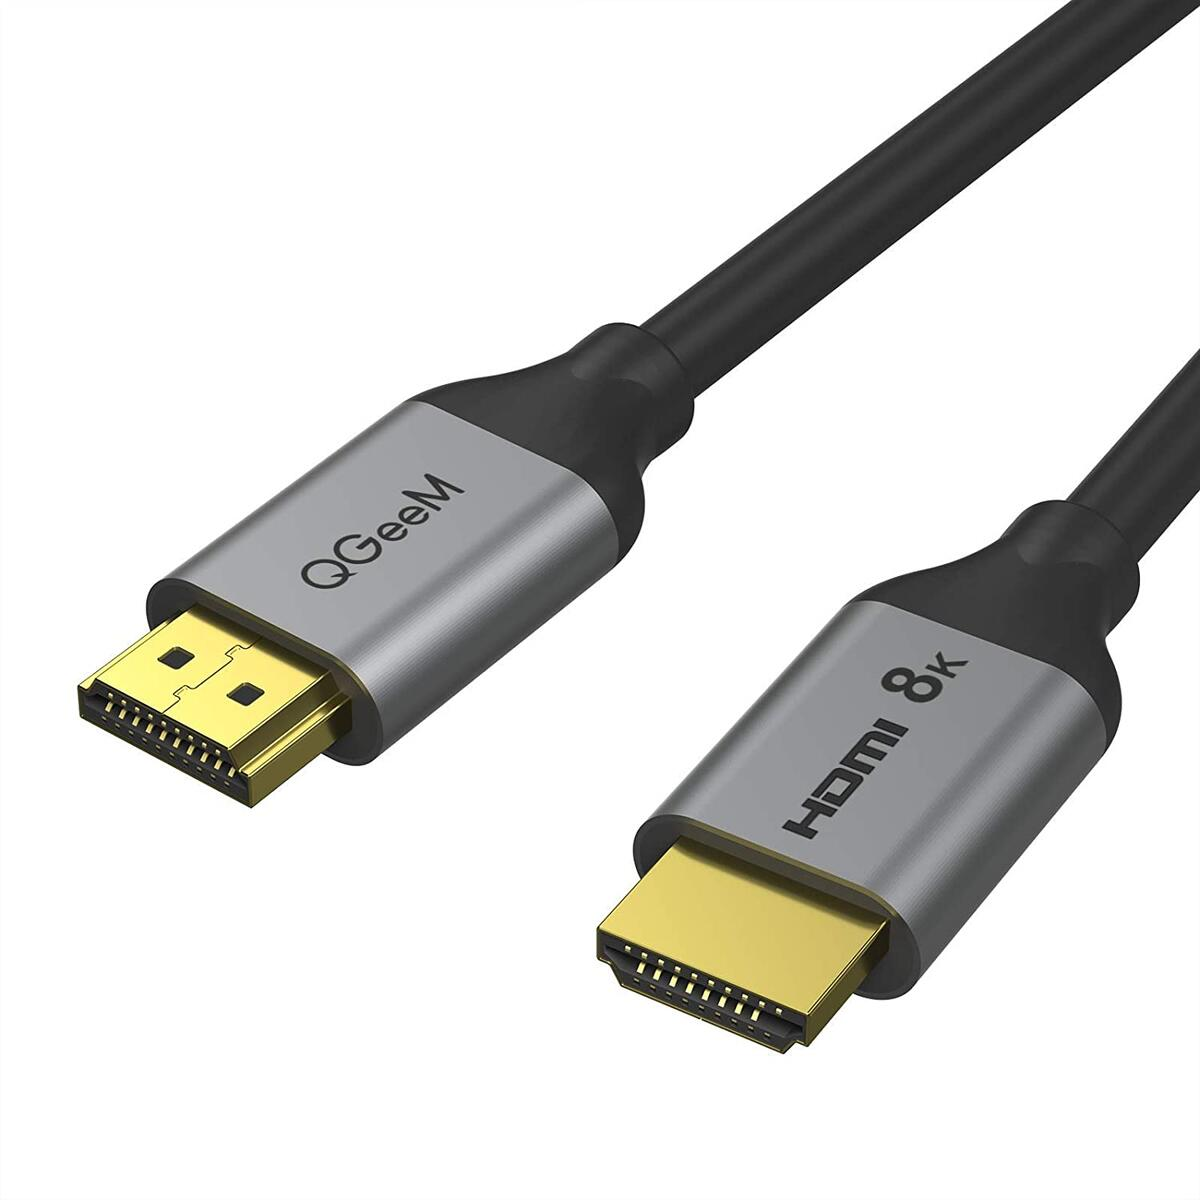 HDMI 2.1 Cable 8K@60Hz 3FT,QGeeM 48Gbps Ultra High Speed HDMI Cord,Compatible with Apple TV,Roku,Samsung QLED,Sony LG,Nintendo Switch,Playstation,PS5,PS4,Xbox One Series X,HDMI 8k Ultra HD Cable